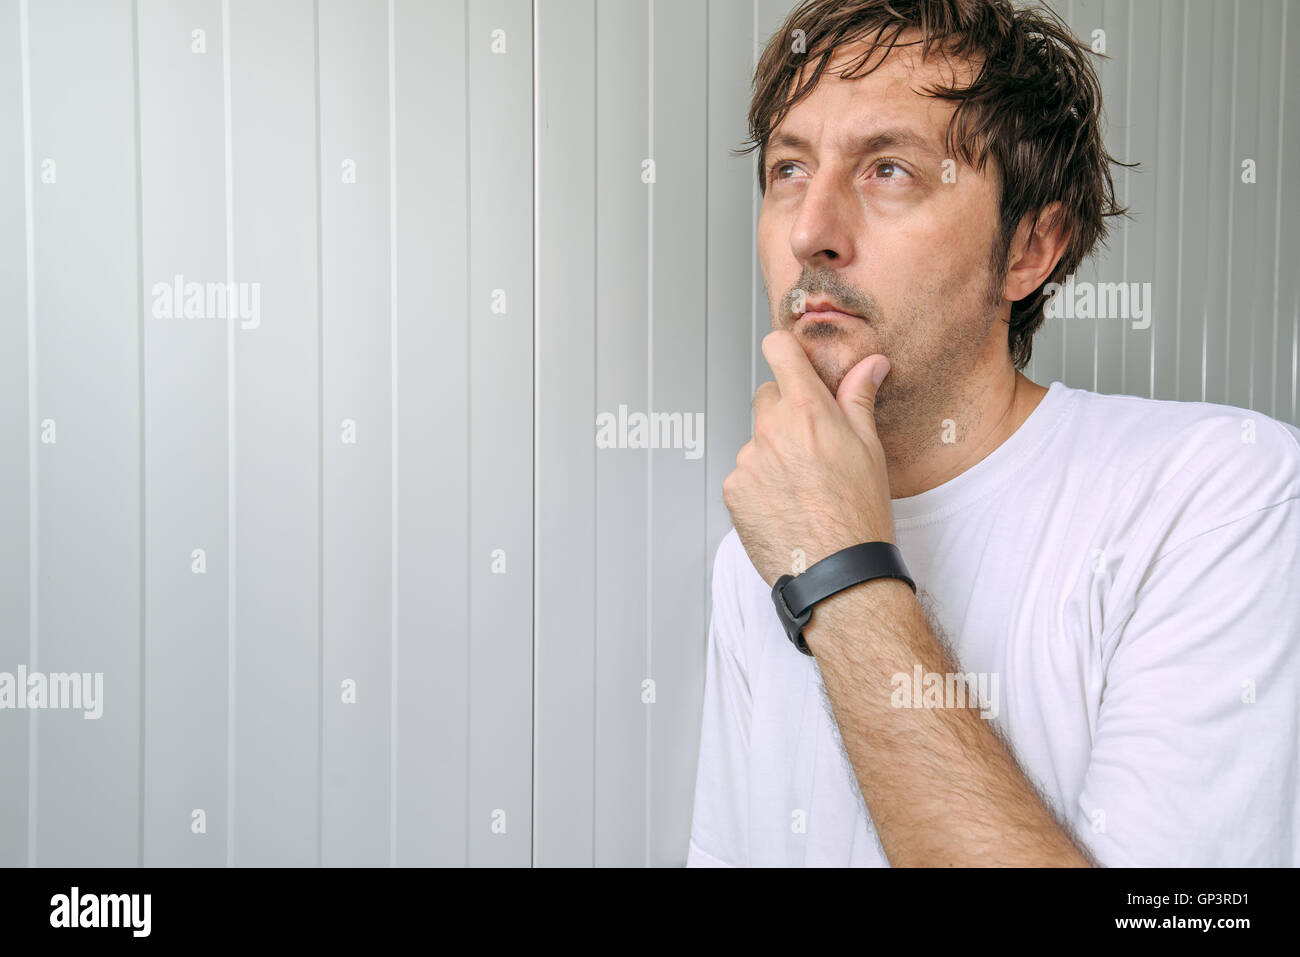 Man with hand on chin thinking deep thoughts and making tough decisions - Stock Image